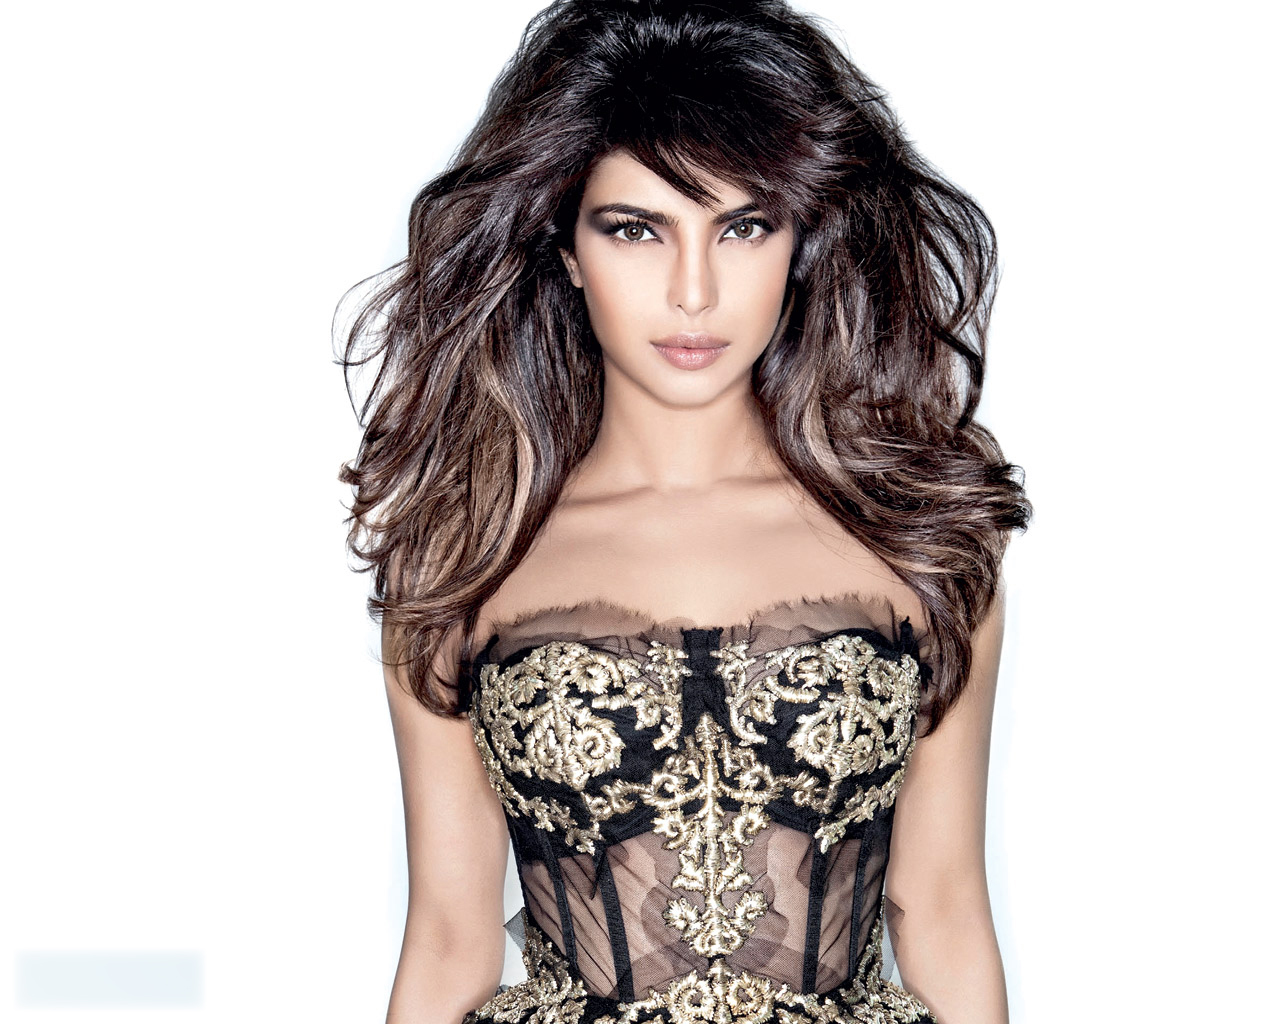 priyanka chopra bikini wallpapers - photo #15